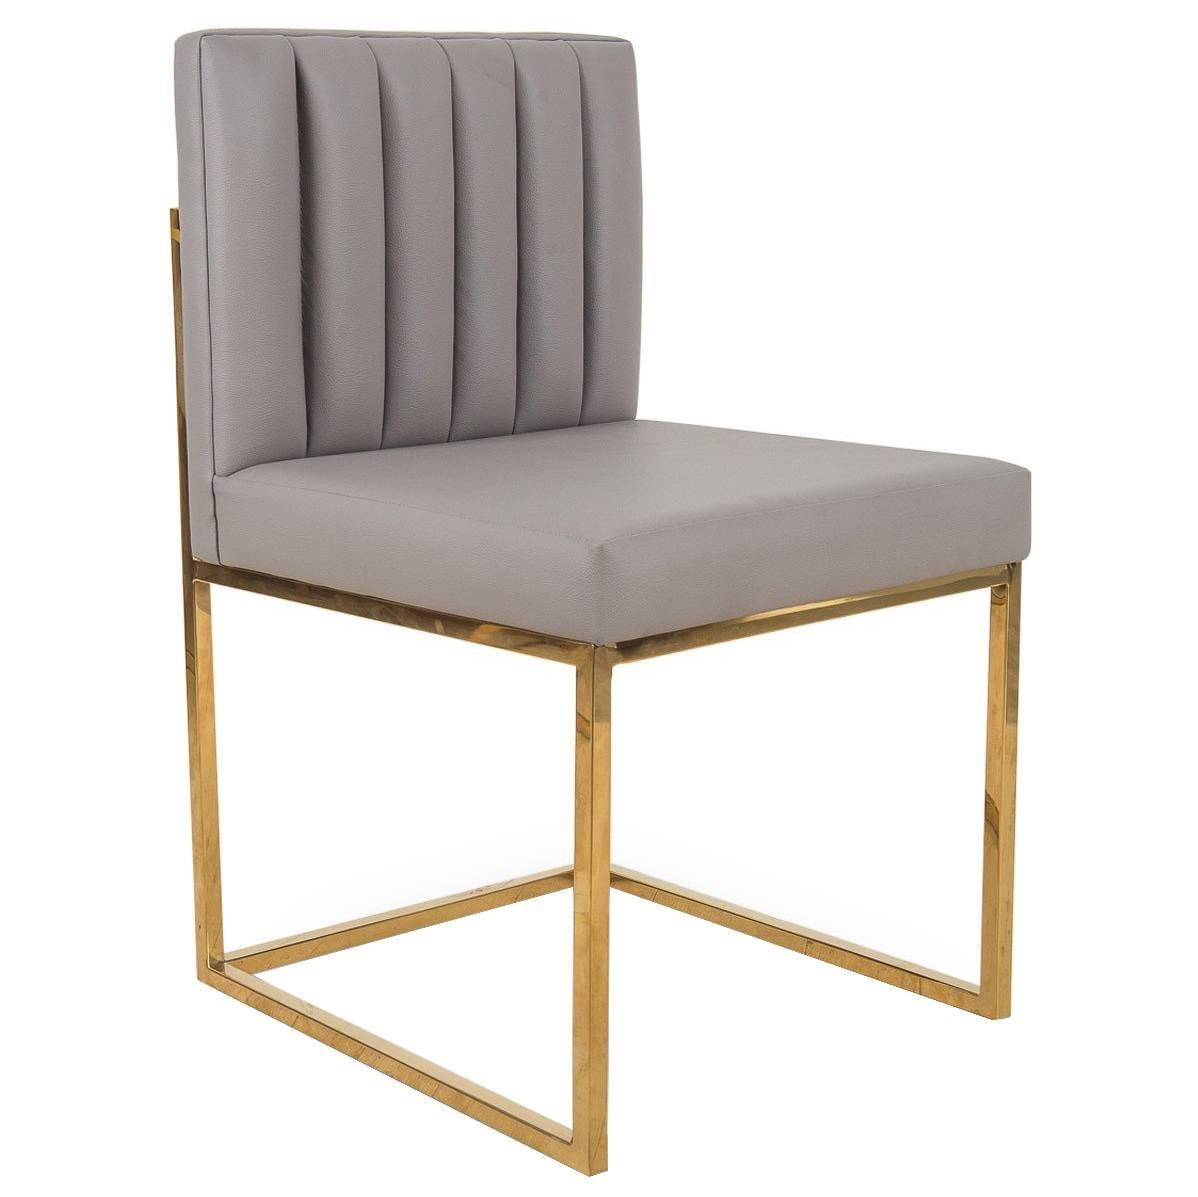 Brass Dining Room Chairs - 280 For Sale at 1stdibs